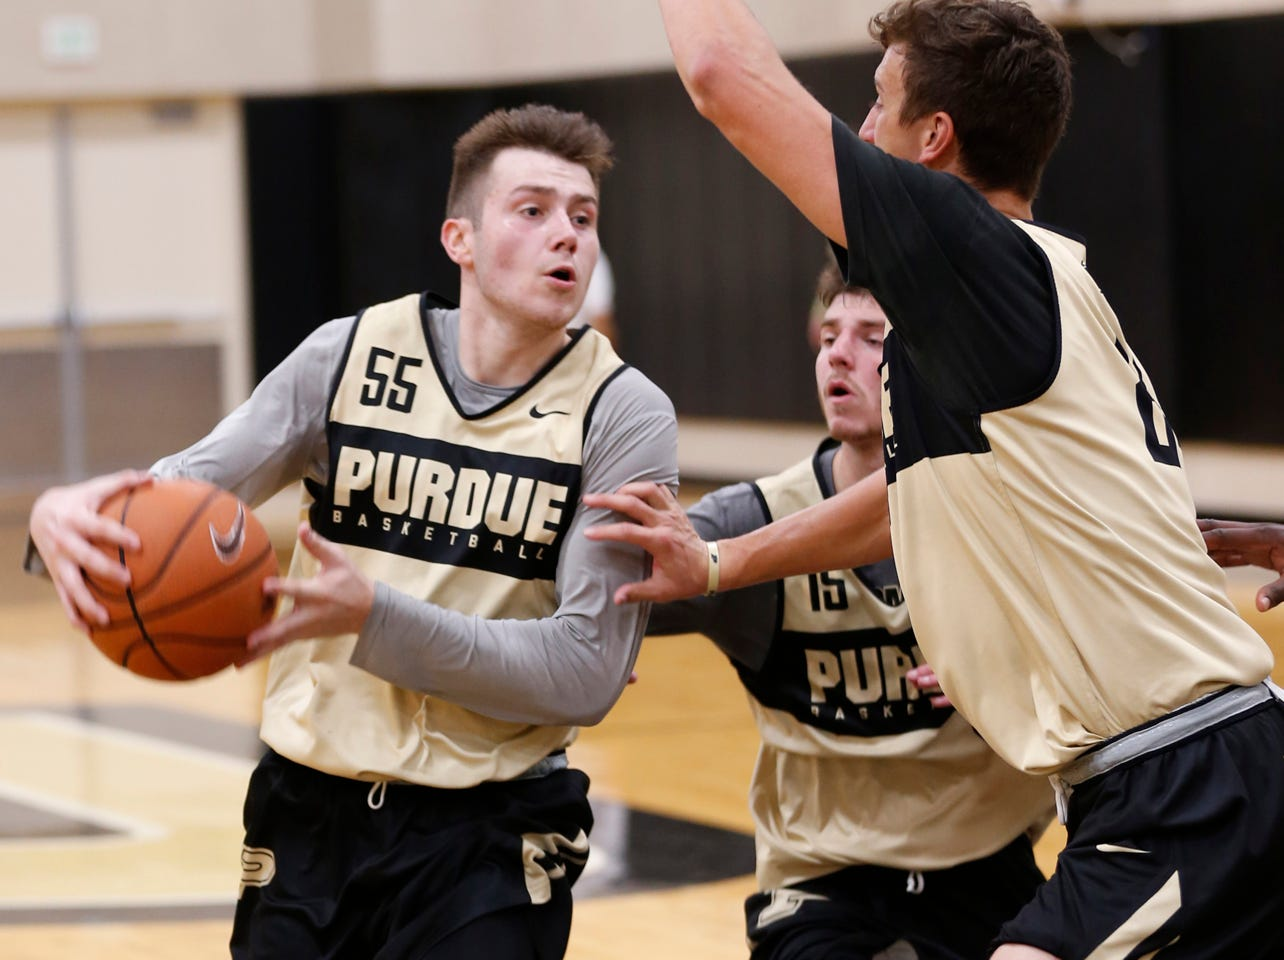 Sasha Stefanovic drives to the basket against Grady Eifert during the first official practice of the season for Purdue men's basketball Tuesday, September 25, 2018, at Cardinal Court in Mackey Arena.